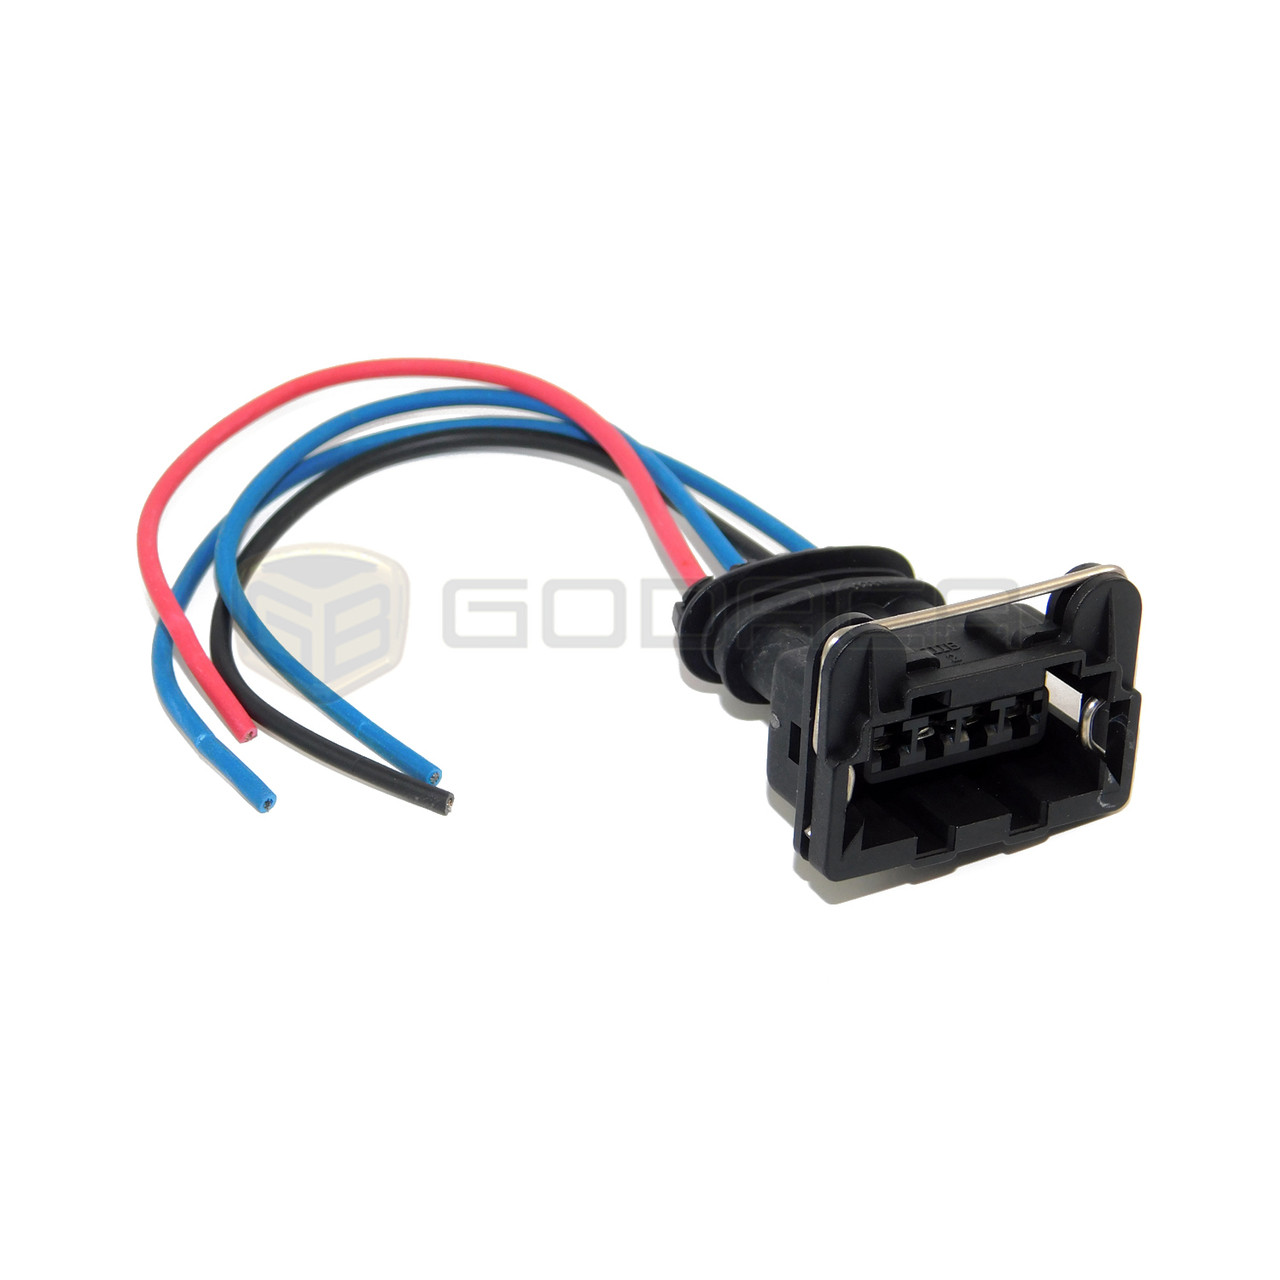 1 x connector 4 way sensor distributor fuel injector connector harness plug godaca llc  [ 1280 x 1280 Pixel ]